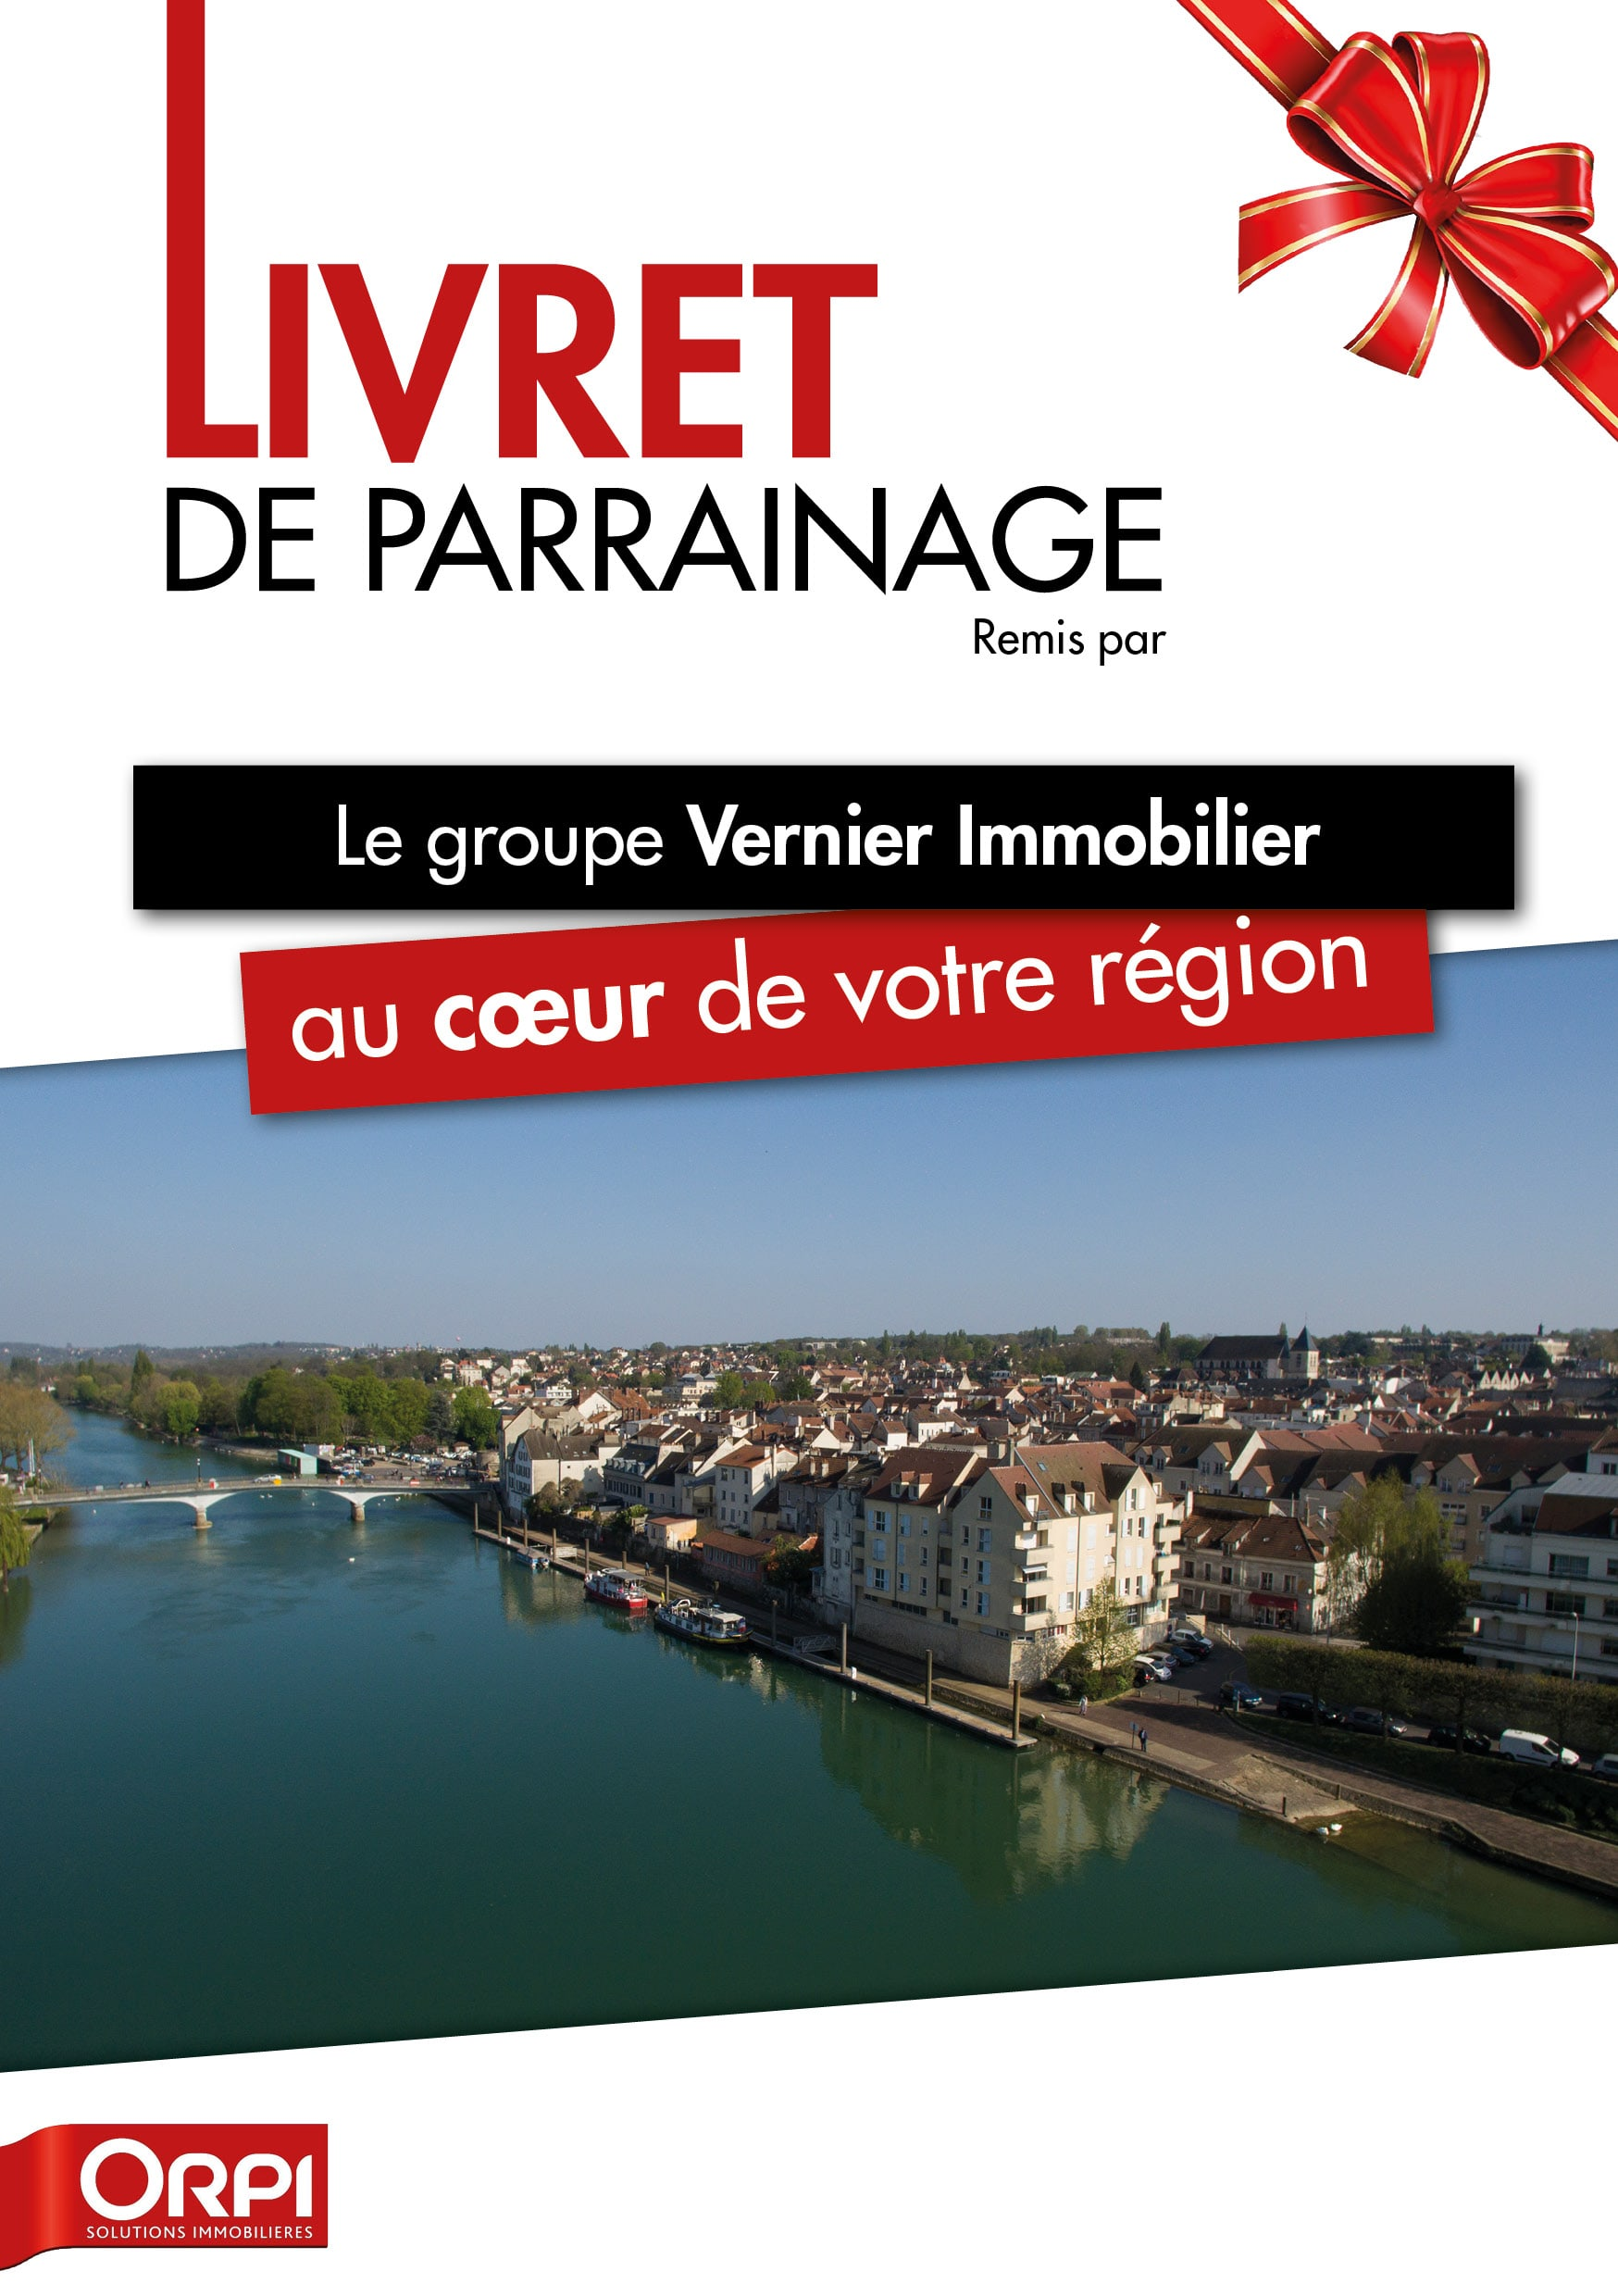 orpi, flyer, plaquette, infographie, graphiste, PAO, miseenpage, graphiste, graphiste77,